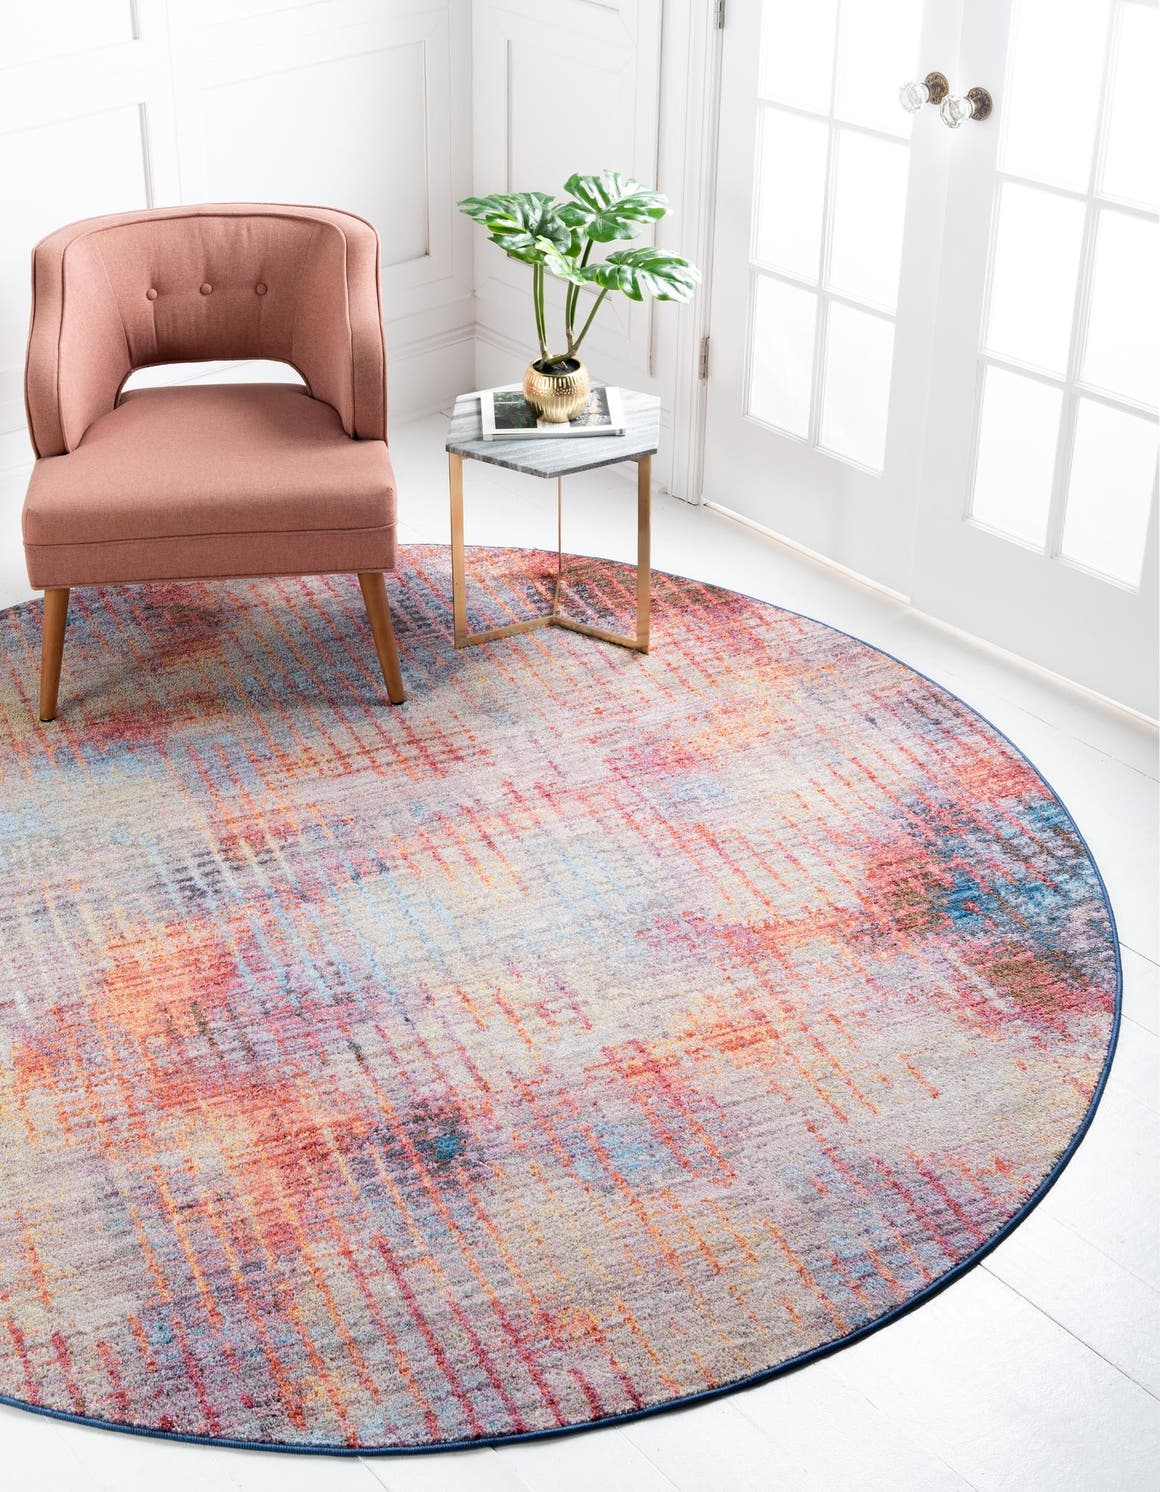 Jill Zarin 8' x 8' Downtown Collection Round Rug main image